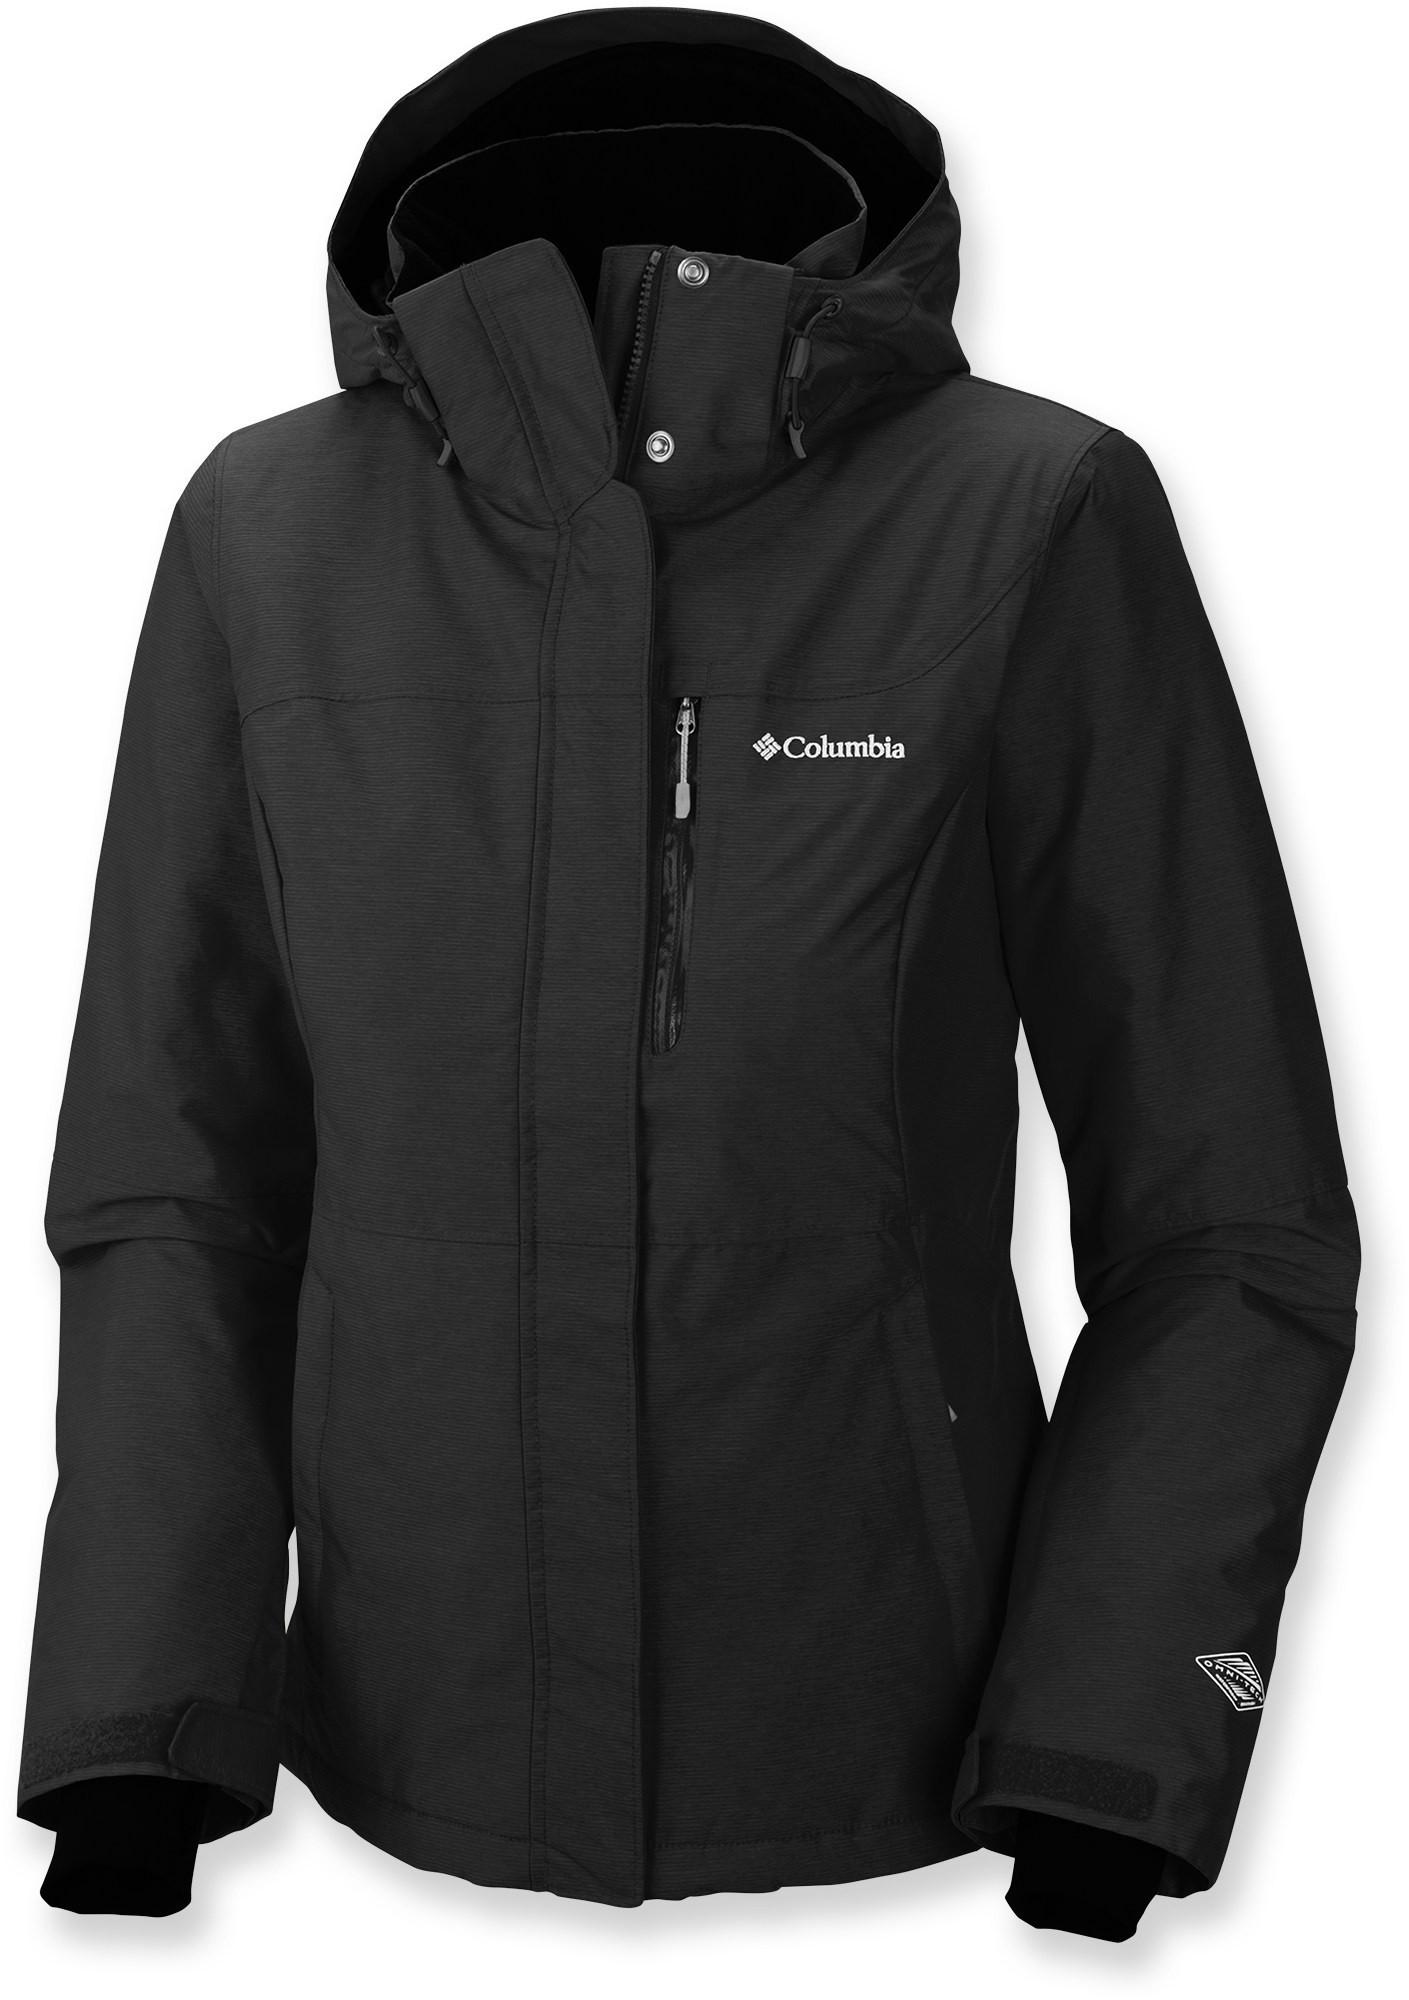 Columbia Alpine Action OH Insulated Jacket - Women's